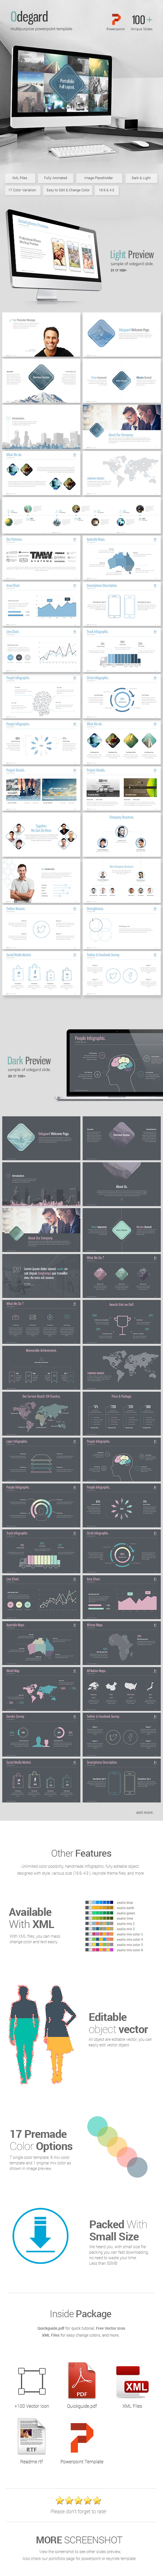 Odegard Simple Powerpoint Presentation Template